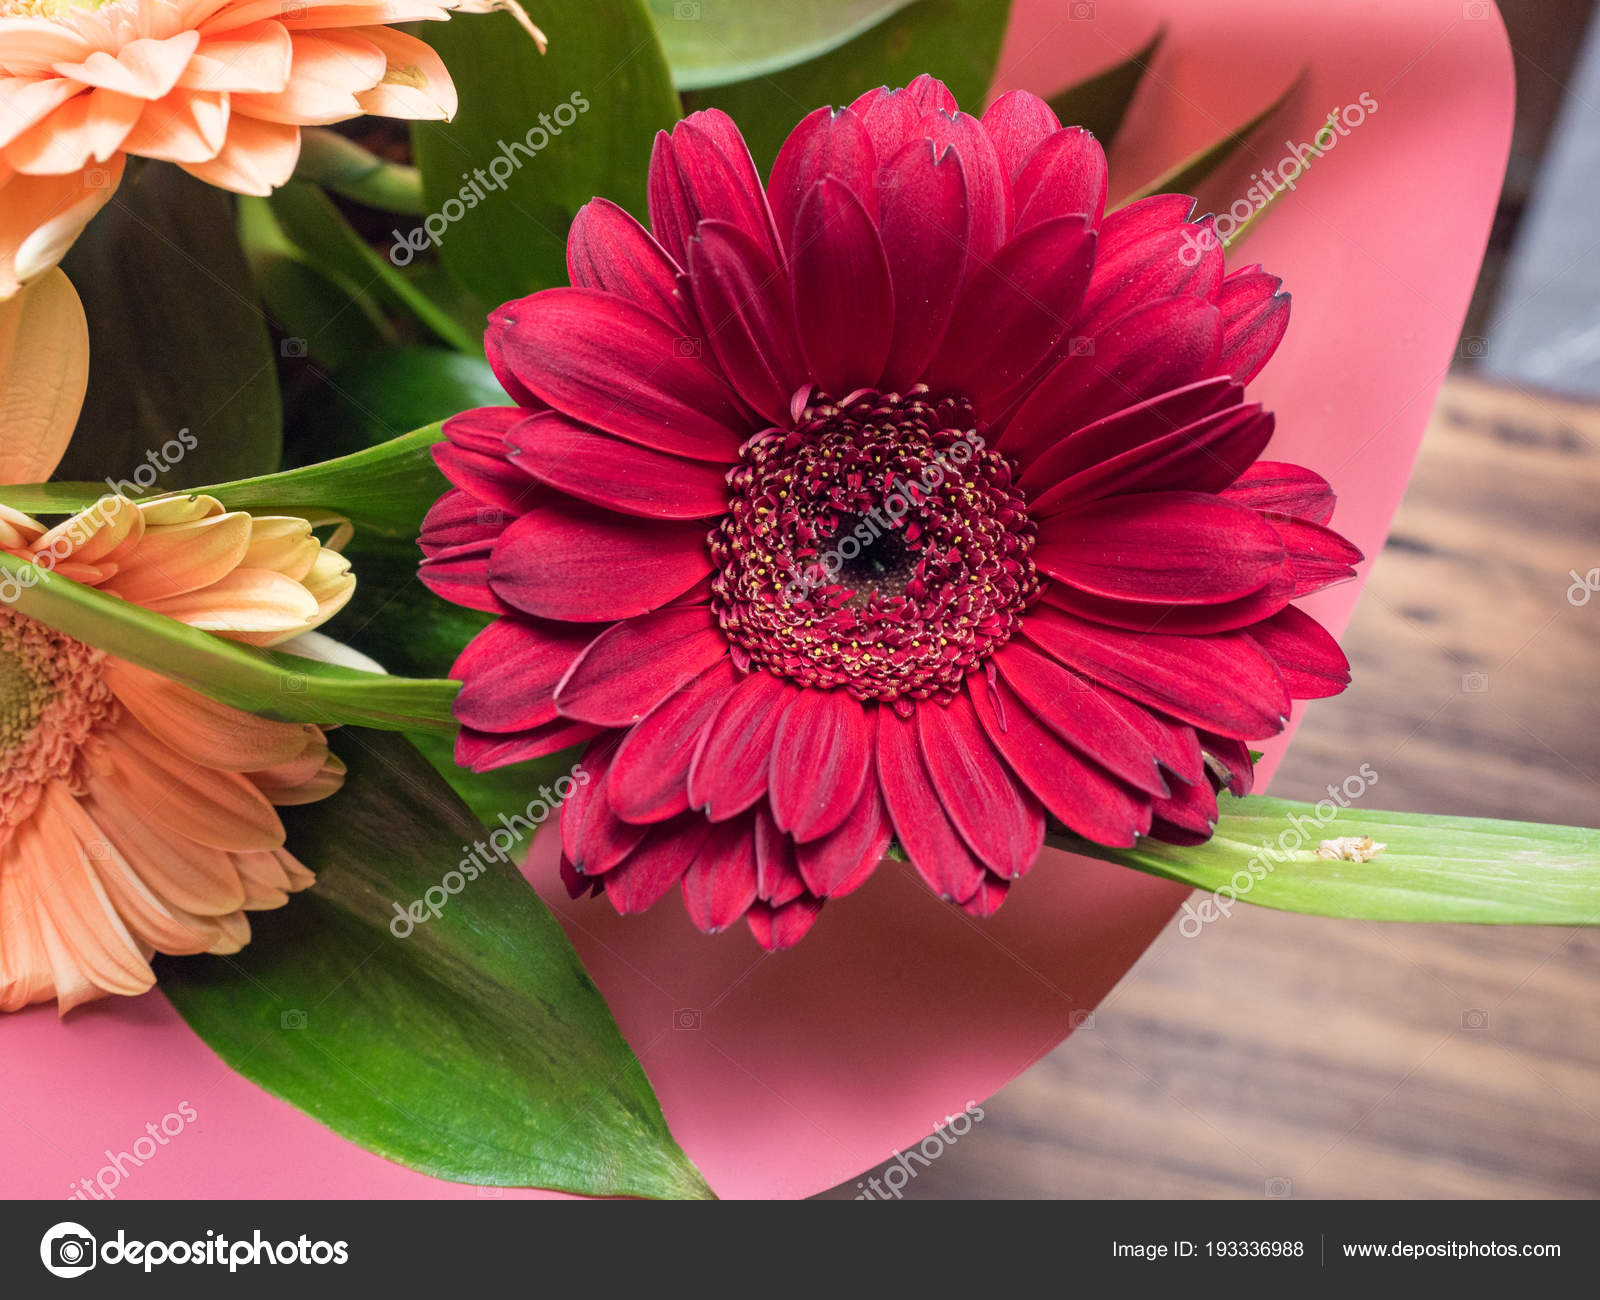 Red bud of flower closeup flower of chrysanthemum with decorative red bud of flower closeup flower of chrysanthemum with decorative greenery decoration made of decorative plants for birthday card invitation poster izmirmasajfo